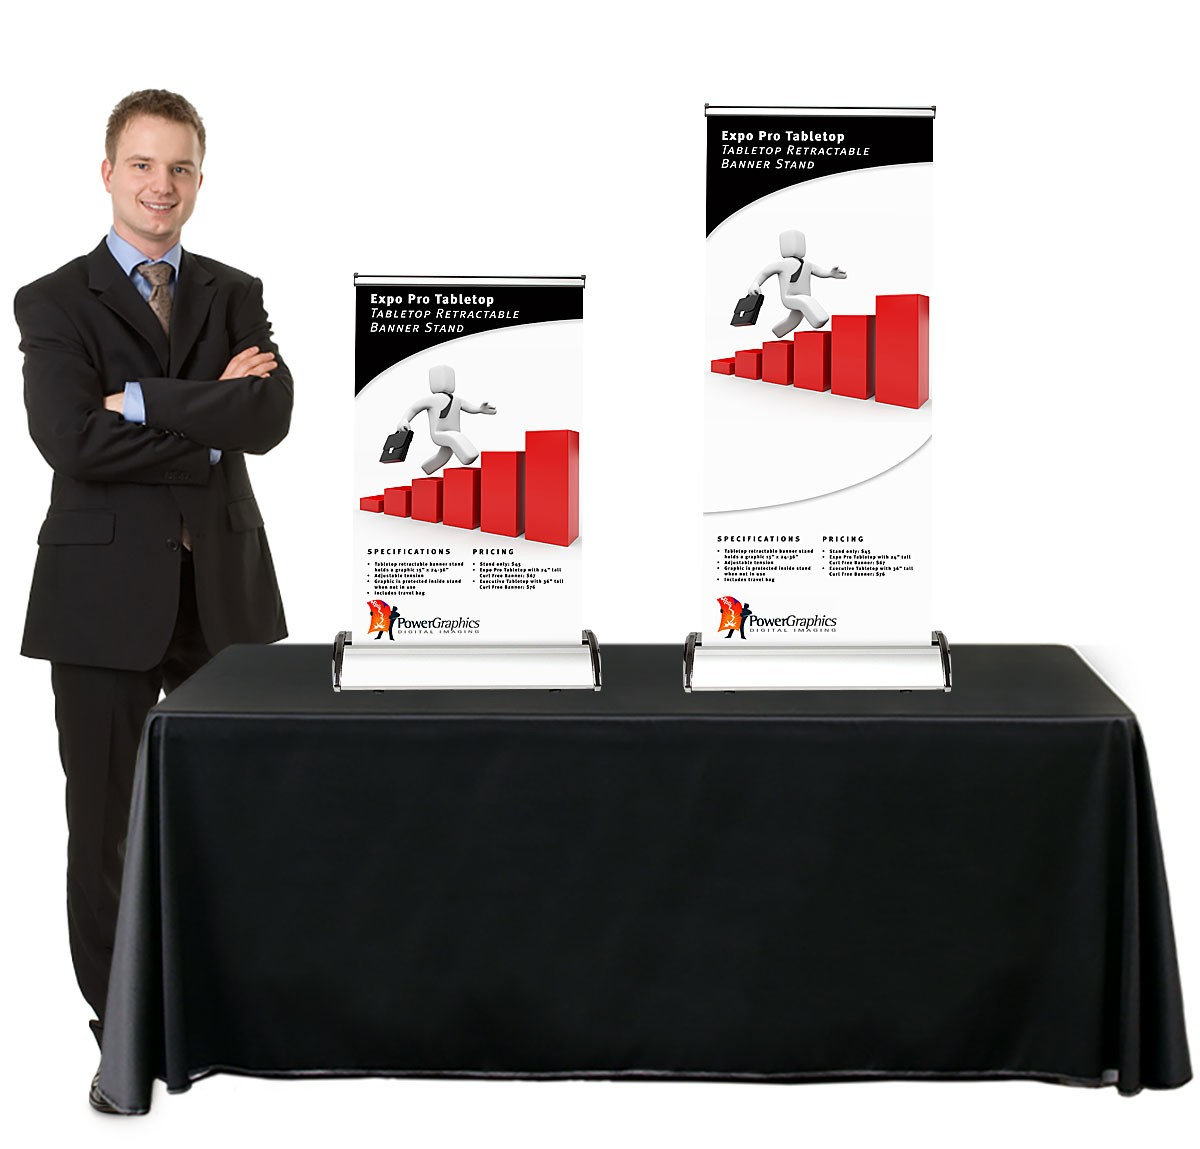 Expo Pro Table Top Retractable Banner Stand